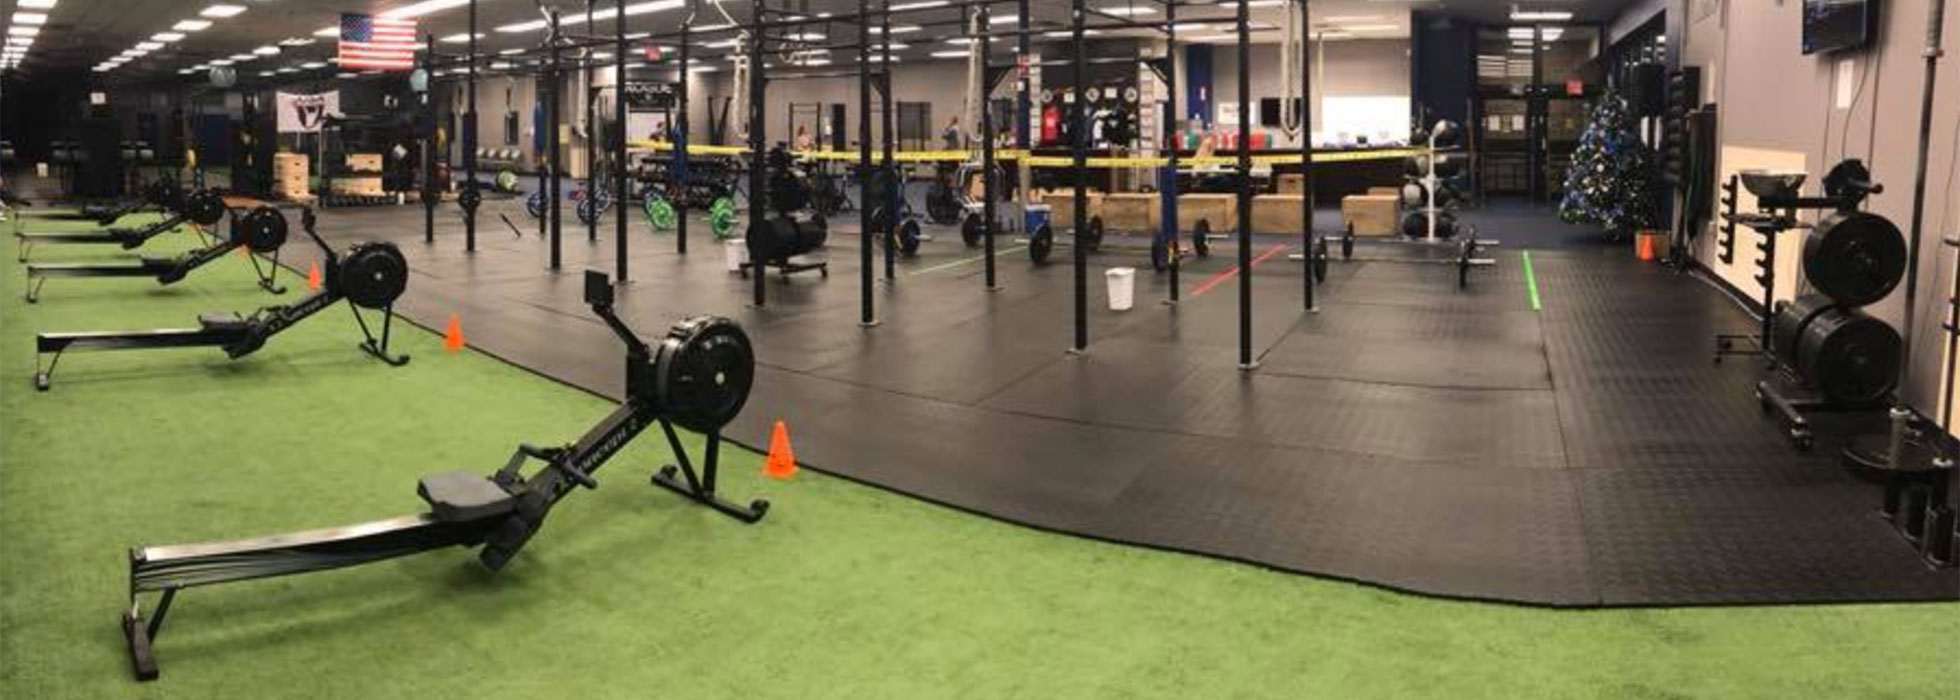 Why Swagler Strength Is Ranked One Of The Best Gyms in Auburn NY, Why Swagler Strength Is Ranked One Of The Best Gyms near Skaneateles NY, Why Swagler Strength Is Ranked One Of The Best Gyms near Weedsport NY